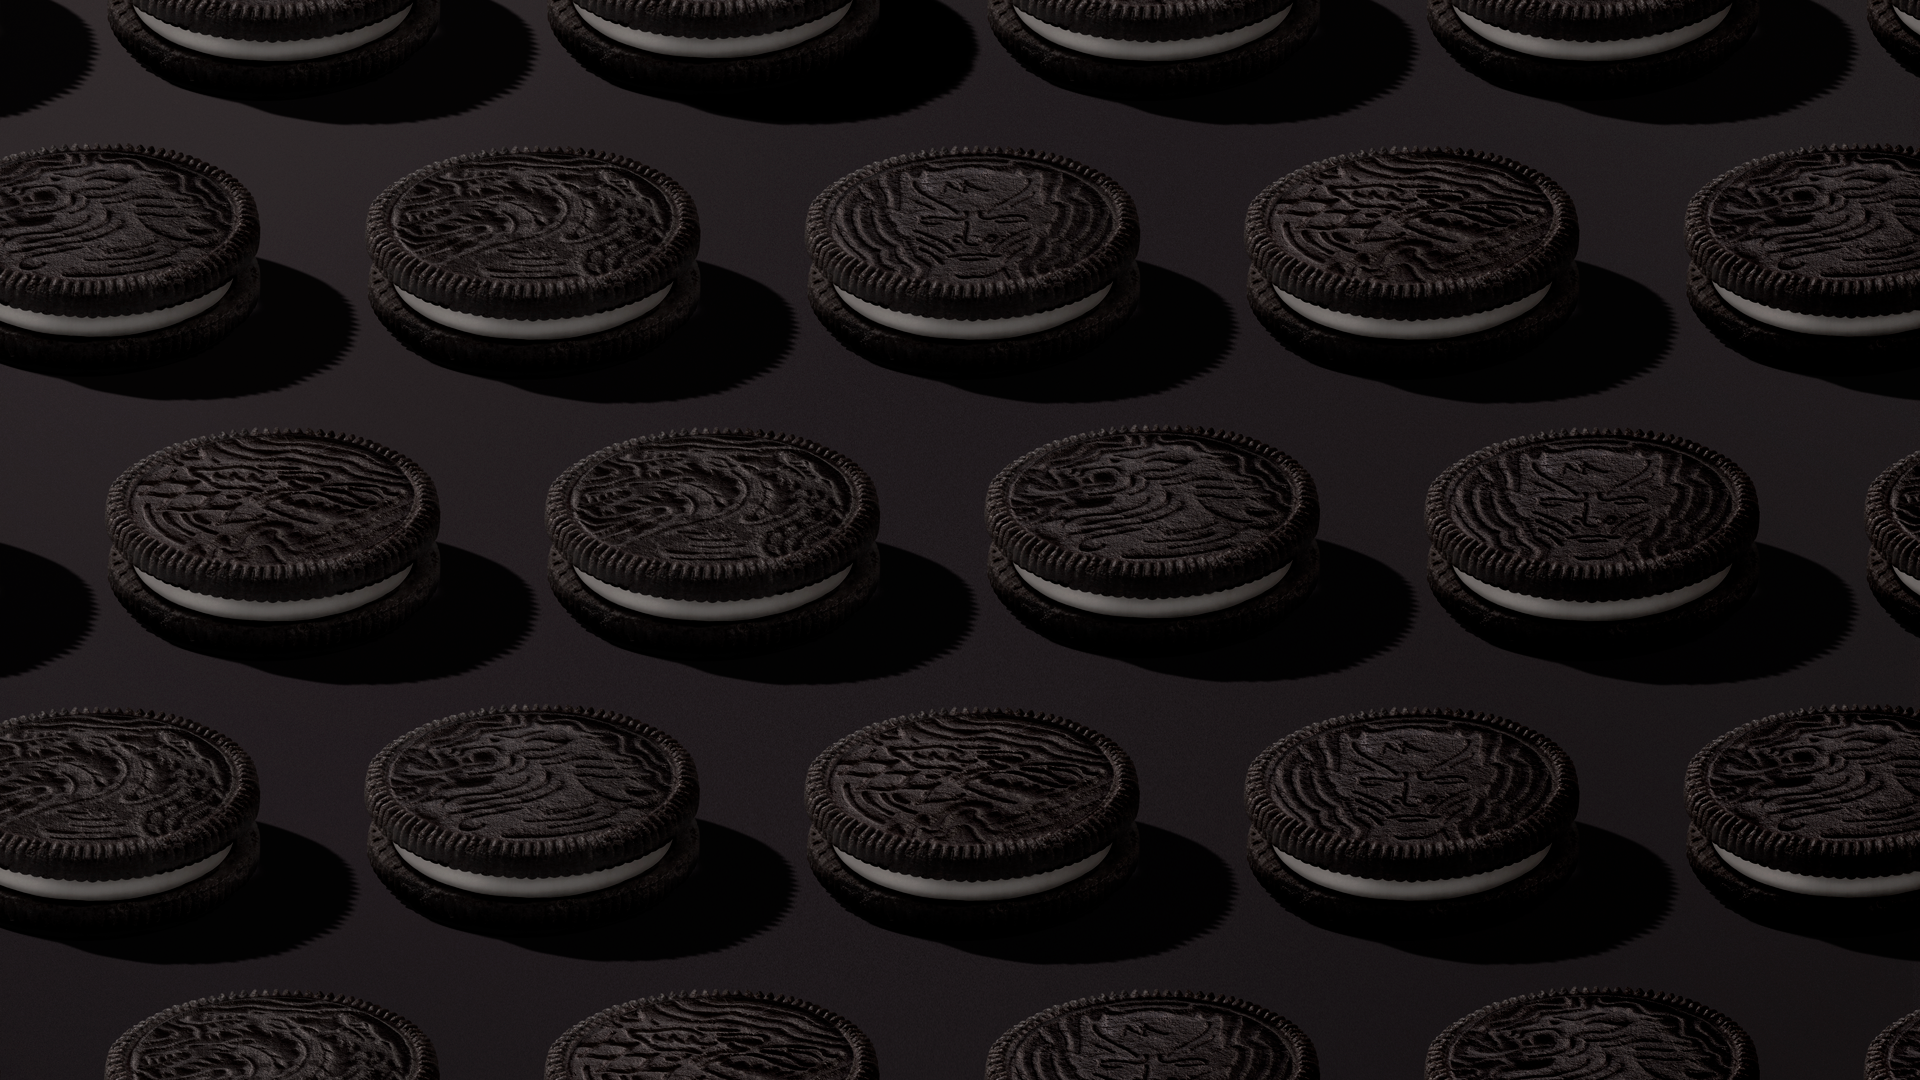 1920x1080_Angle_Cookie_Grid_Pattern.png